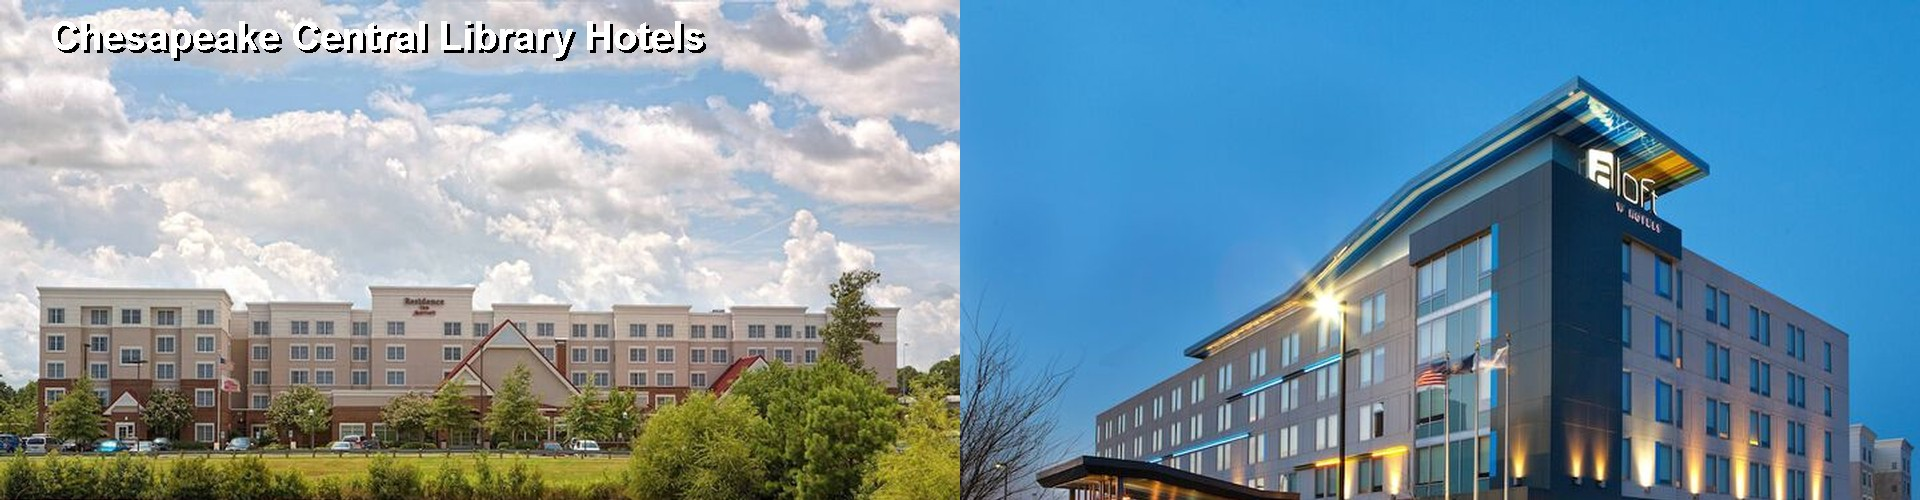 5 Best Hotels near Chesapeake Central Library